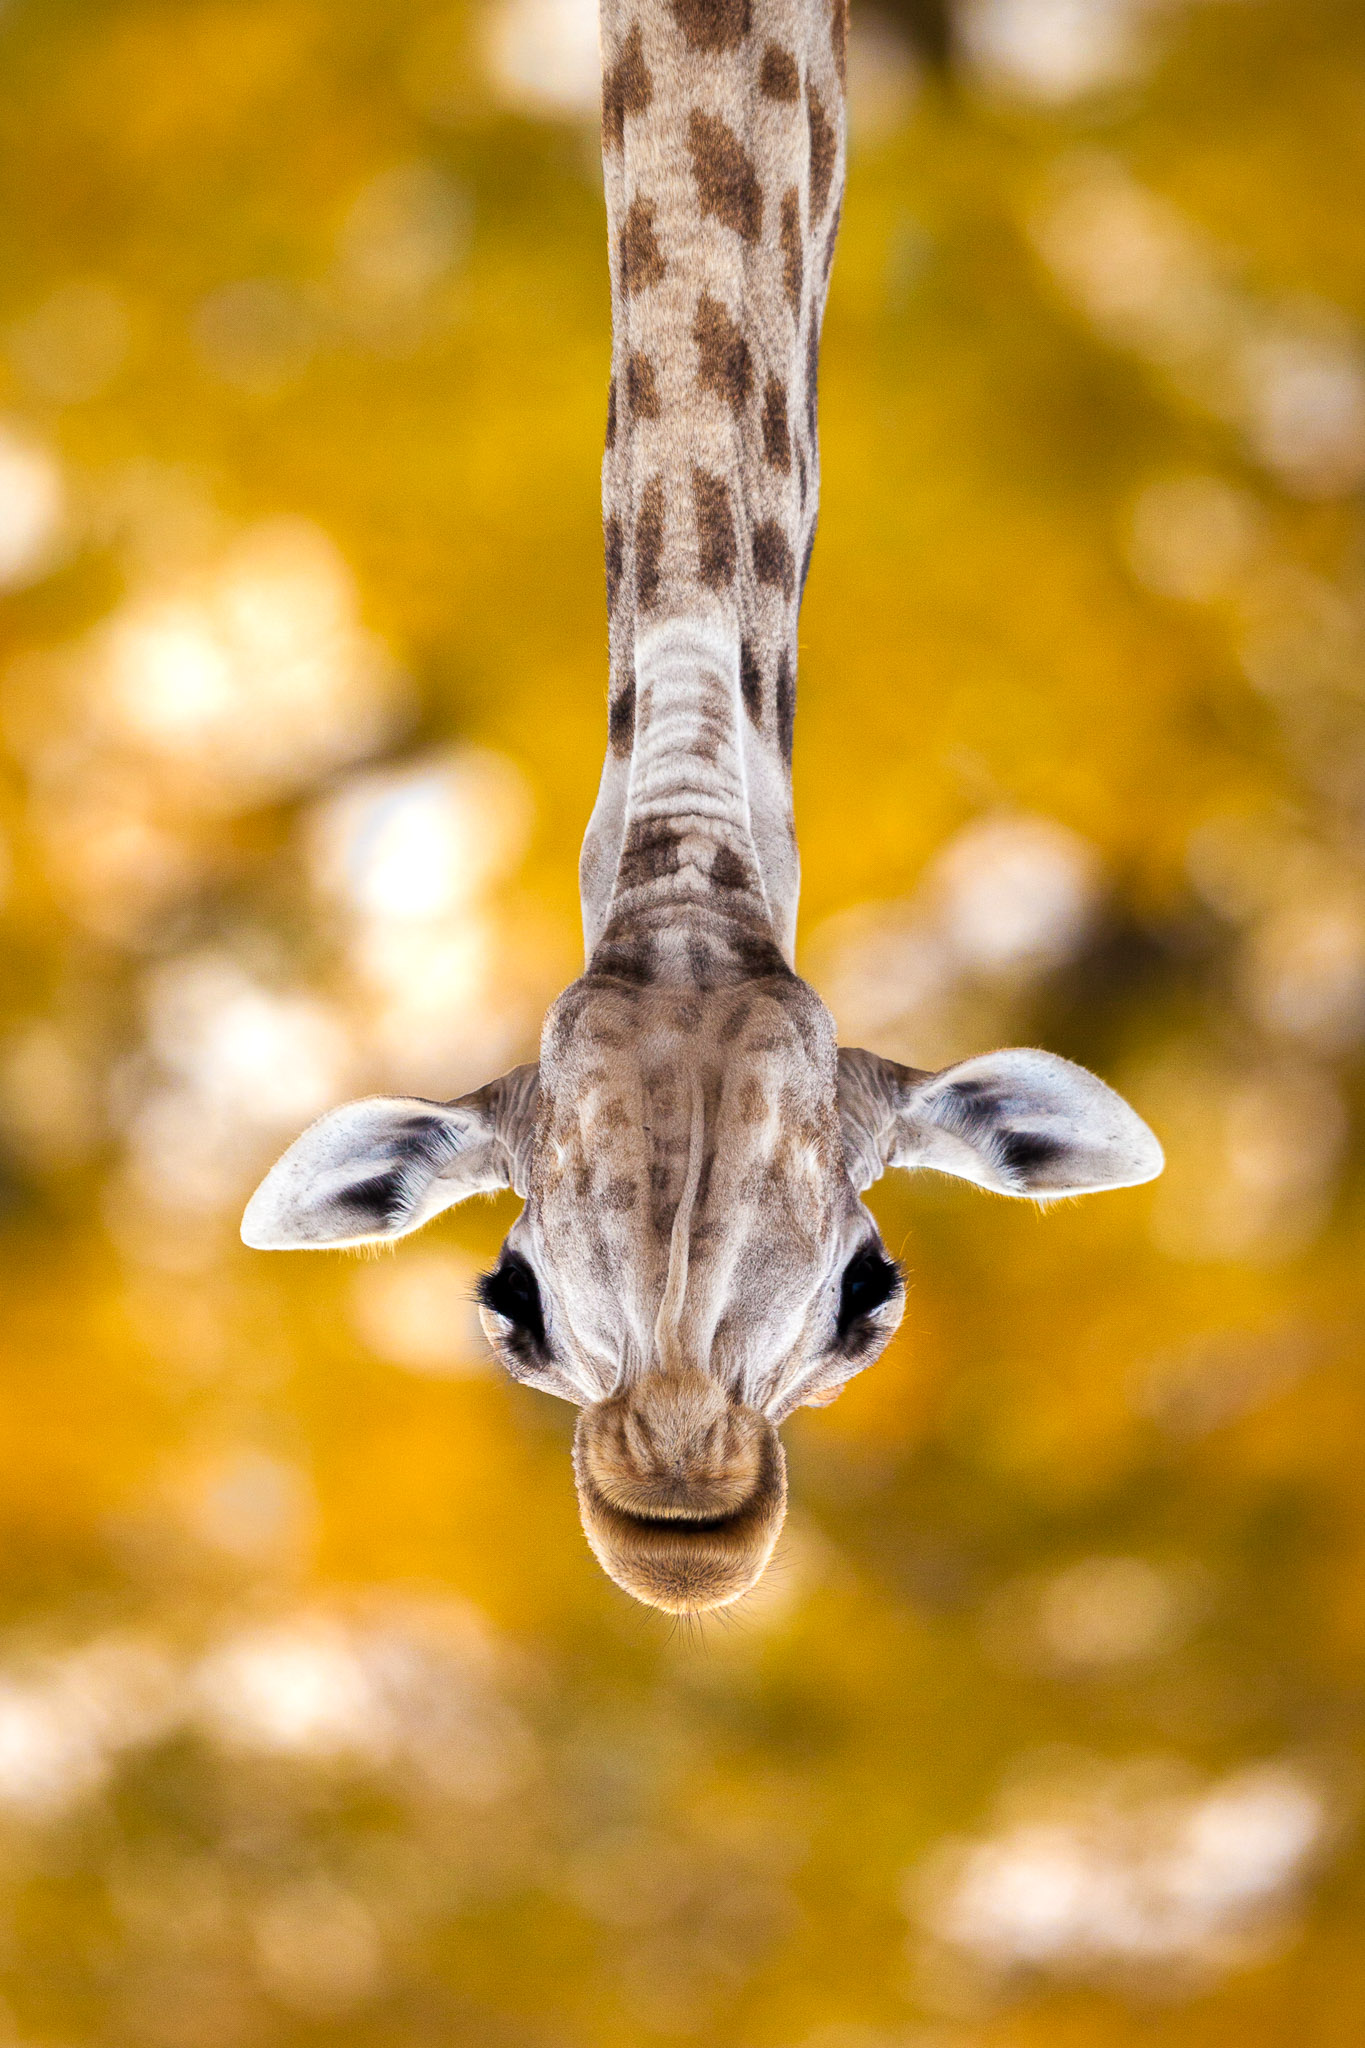 A funny angle of a giraffe from below